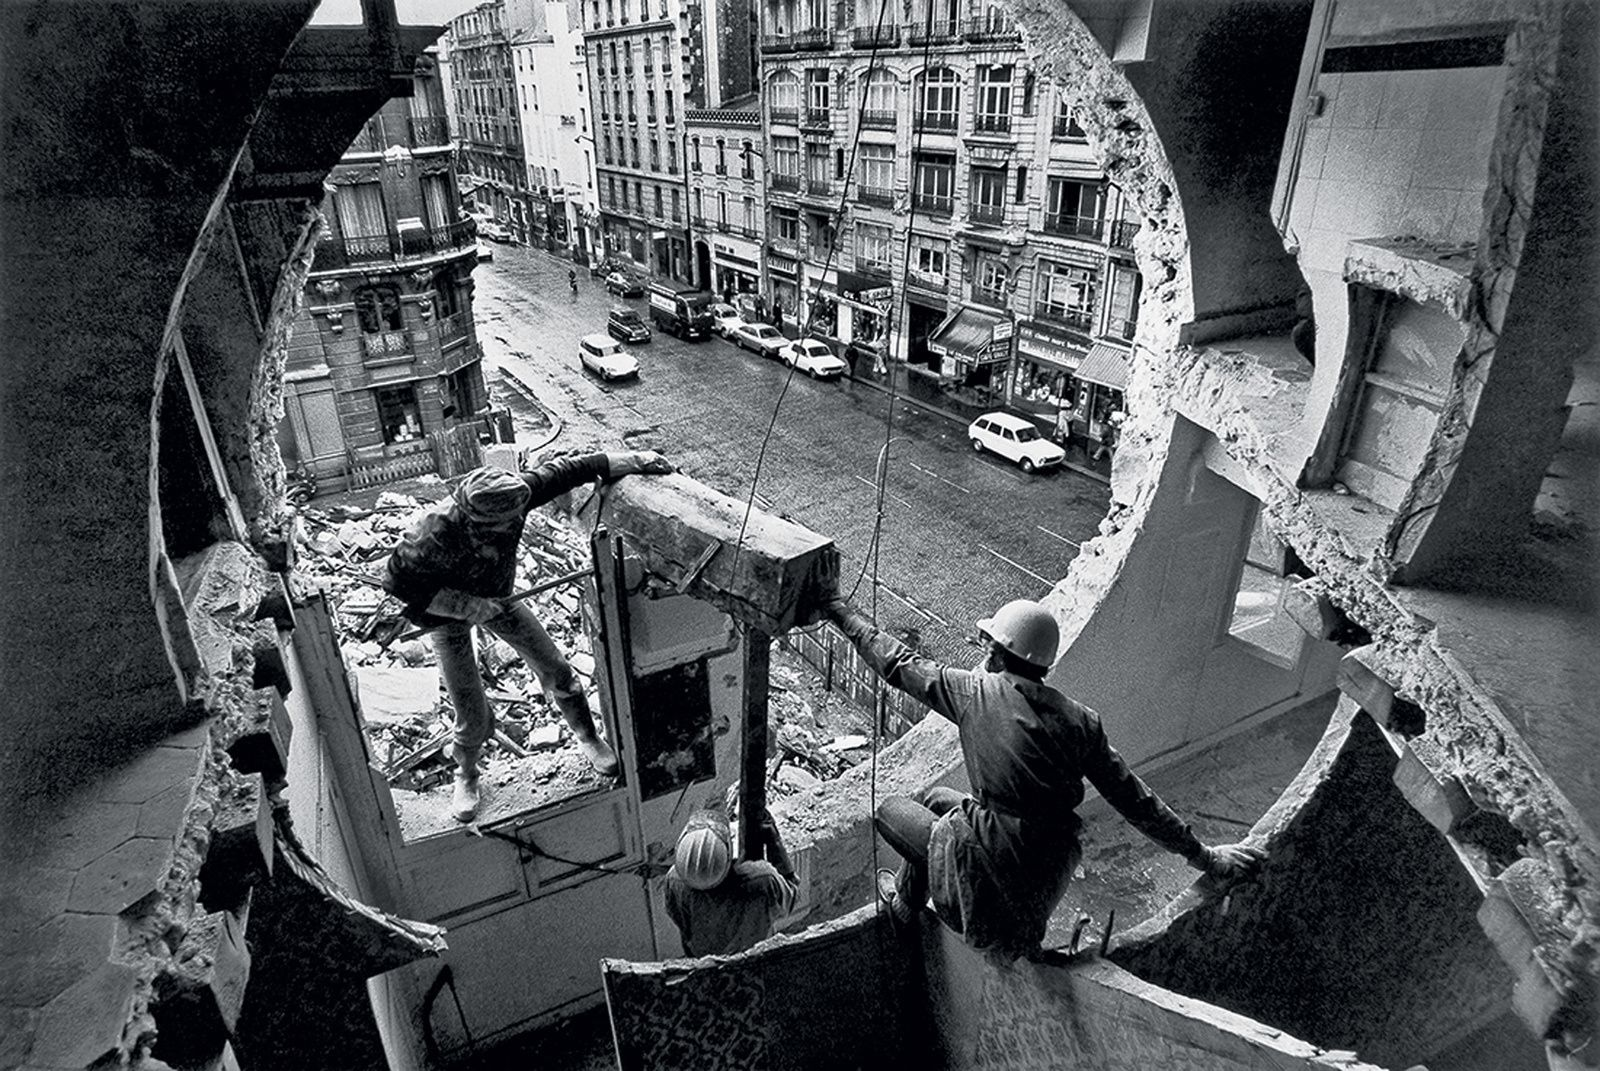 """Gordon Matta-Clark et Gerry Hovagimyan travaillant à Conical Intersect"", 1975 de Gordon MATTA-CLARK - Courtesy de l'Artiste"